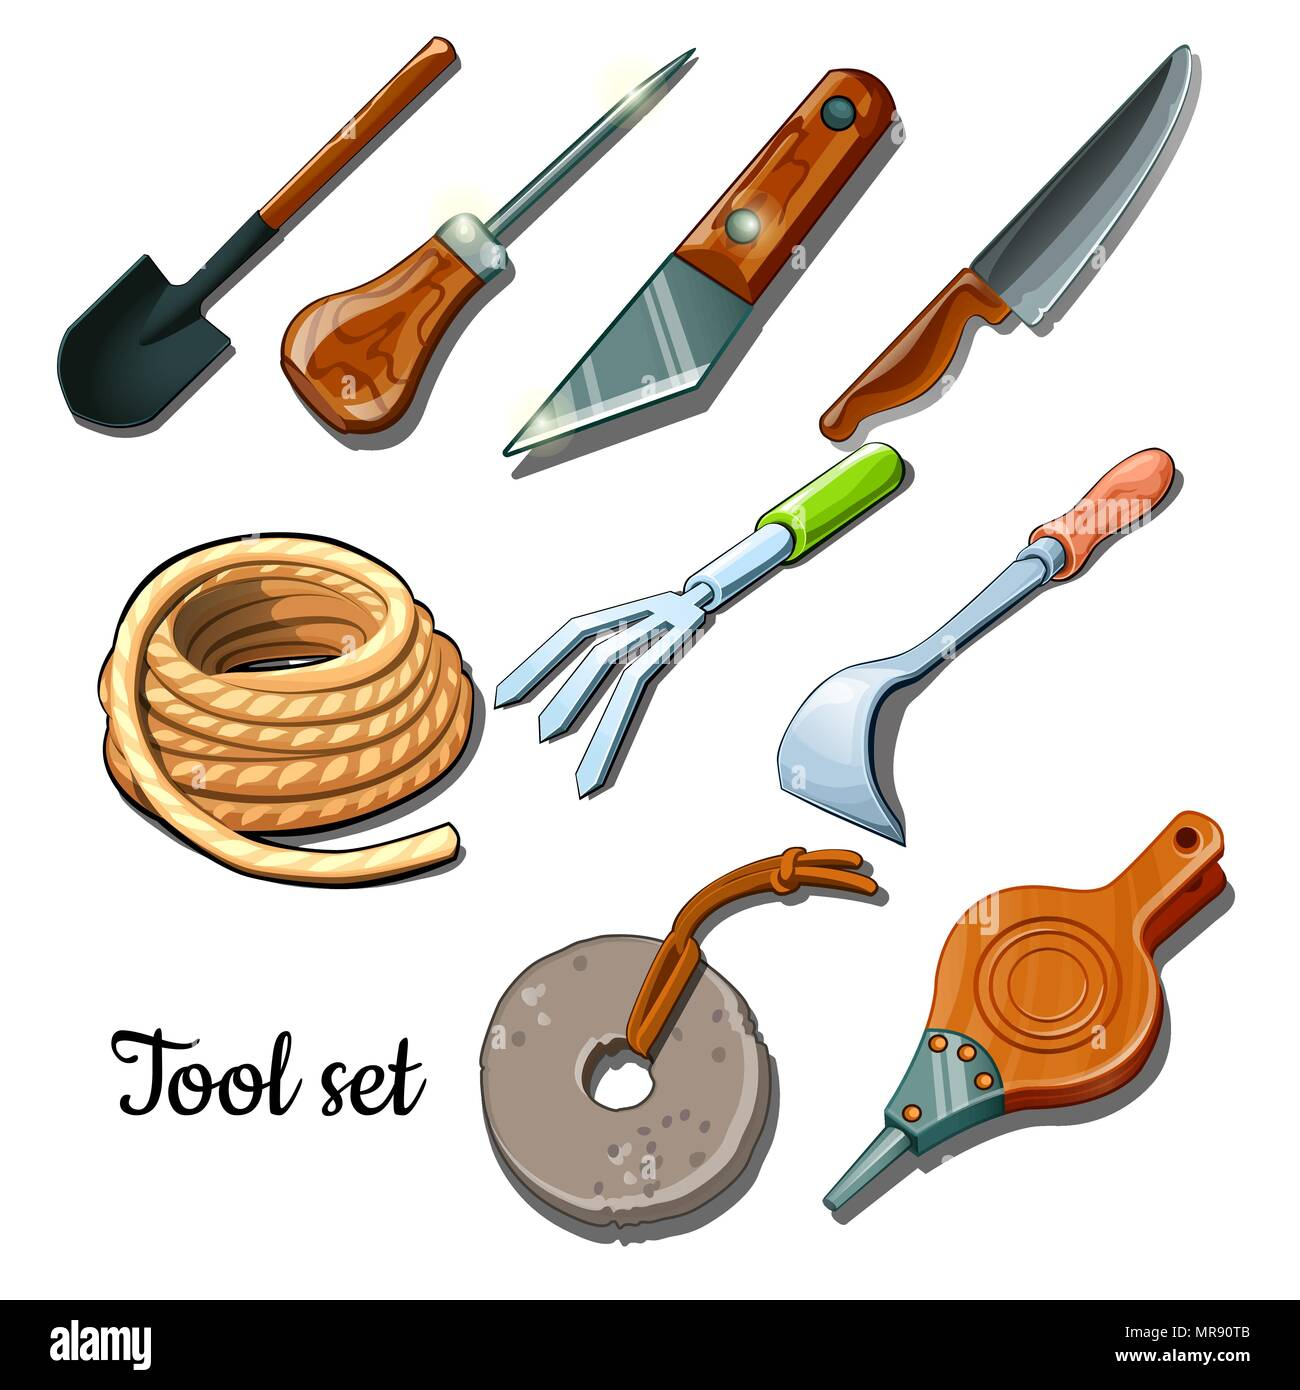 The universal set of tools and fixtures is isolated on a white background. Cartoon vector illustration close-up. - Stock Vector